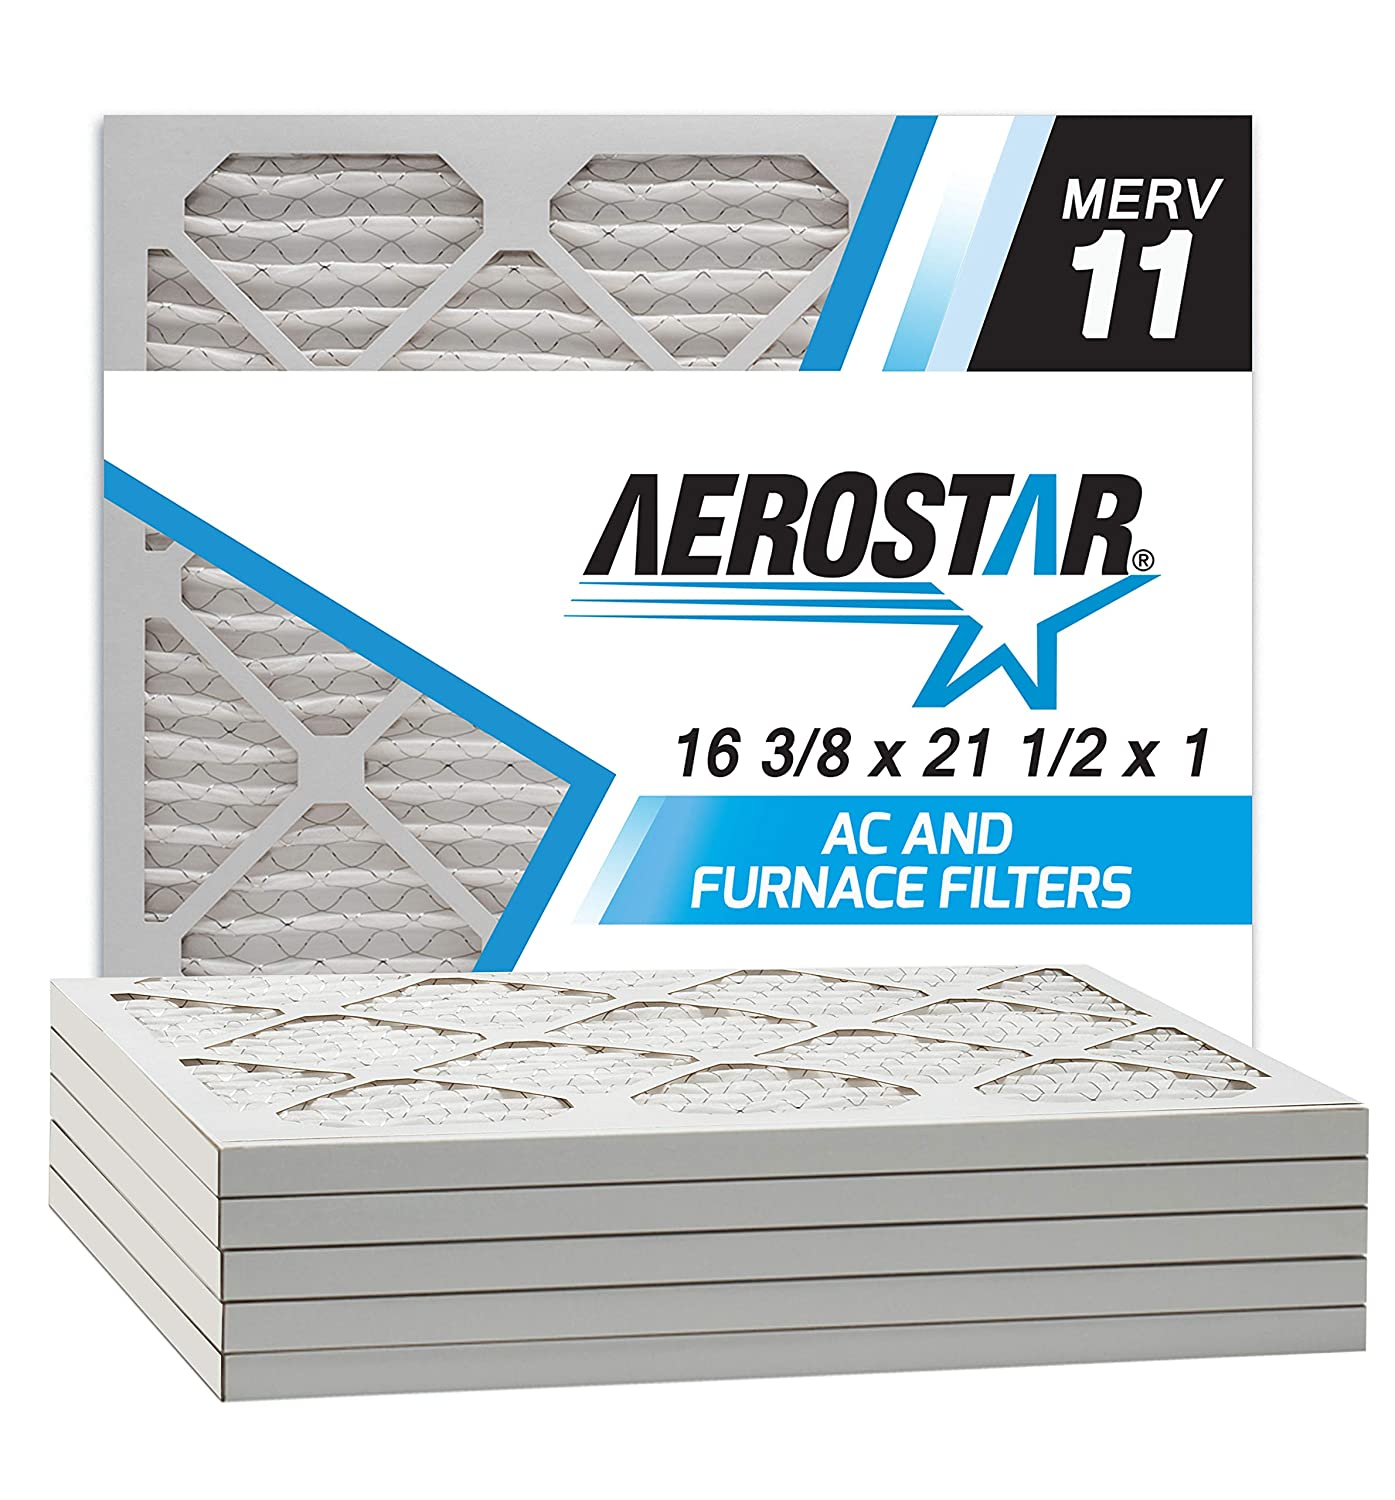 Aerostar 16 3/8x21 1/2x1 MERV 11 Pleated Air Filter, Made in the USA, 6-Pack